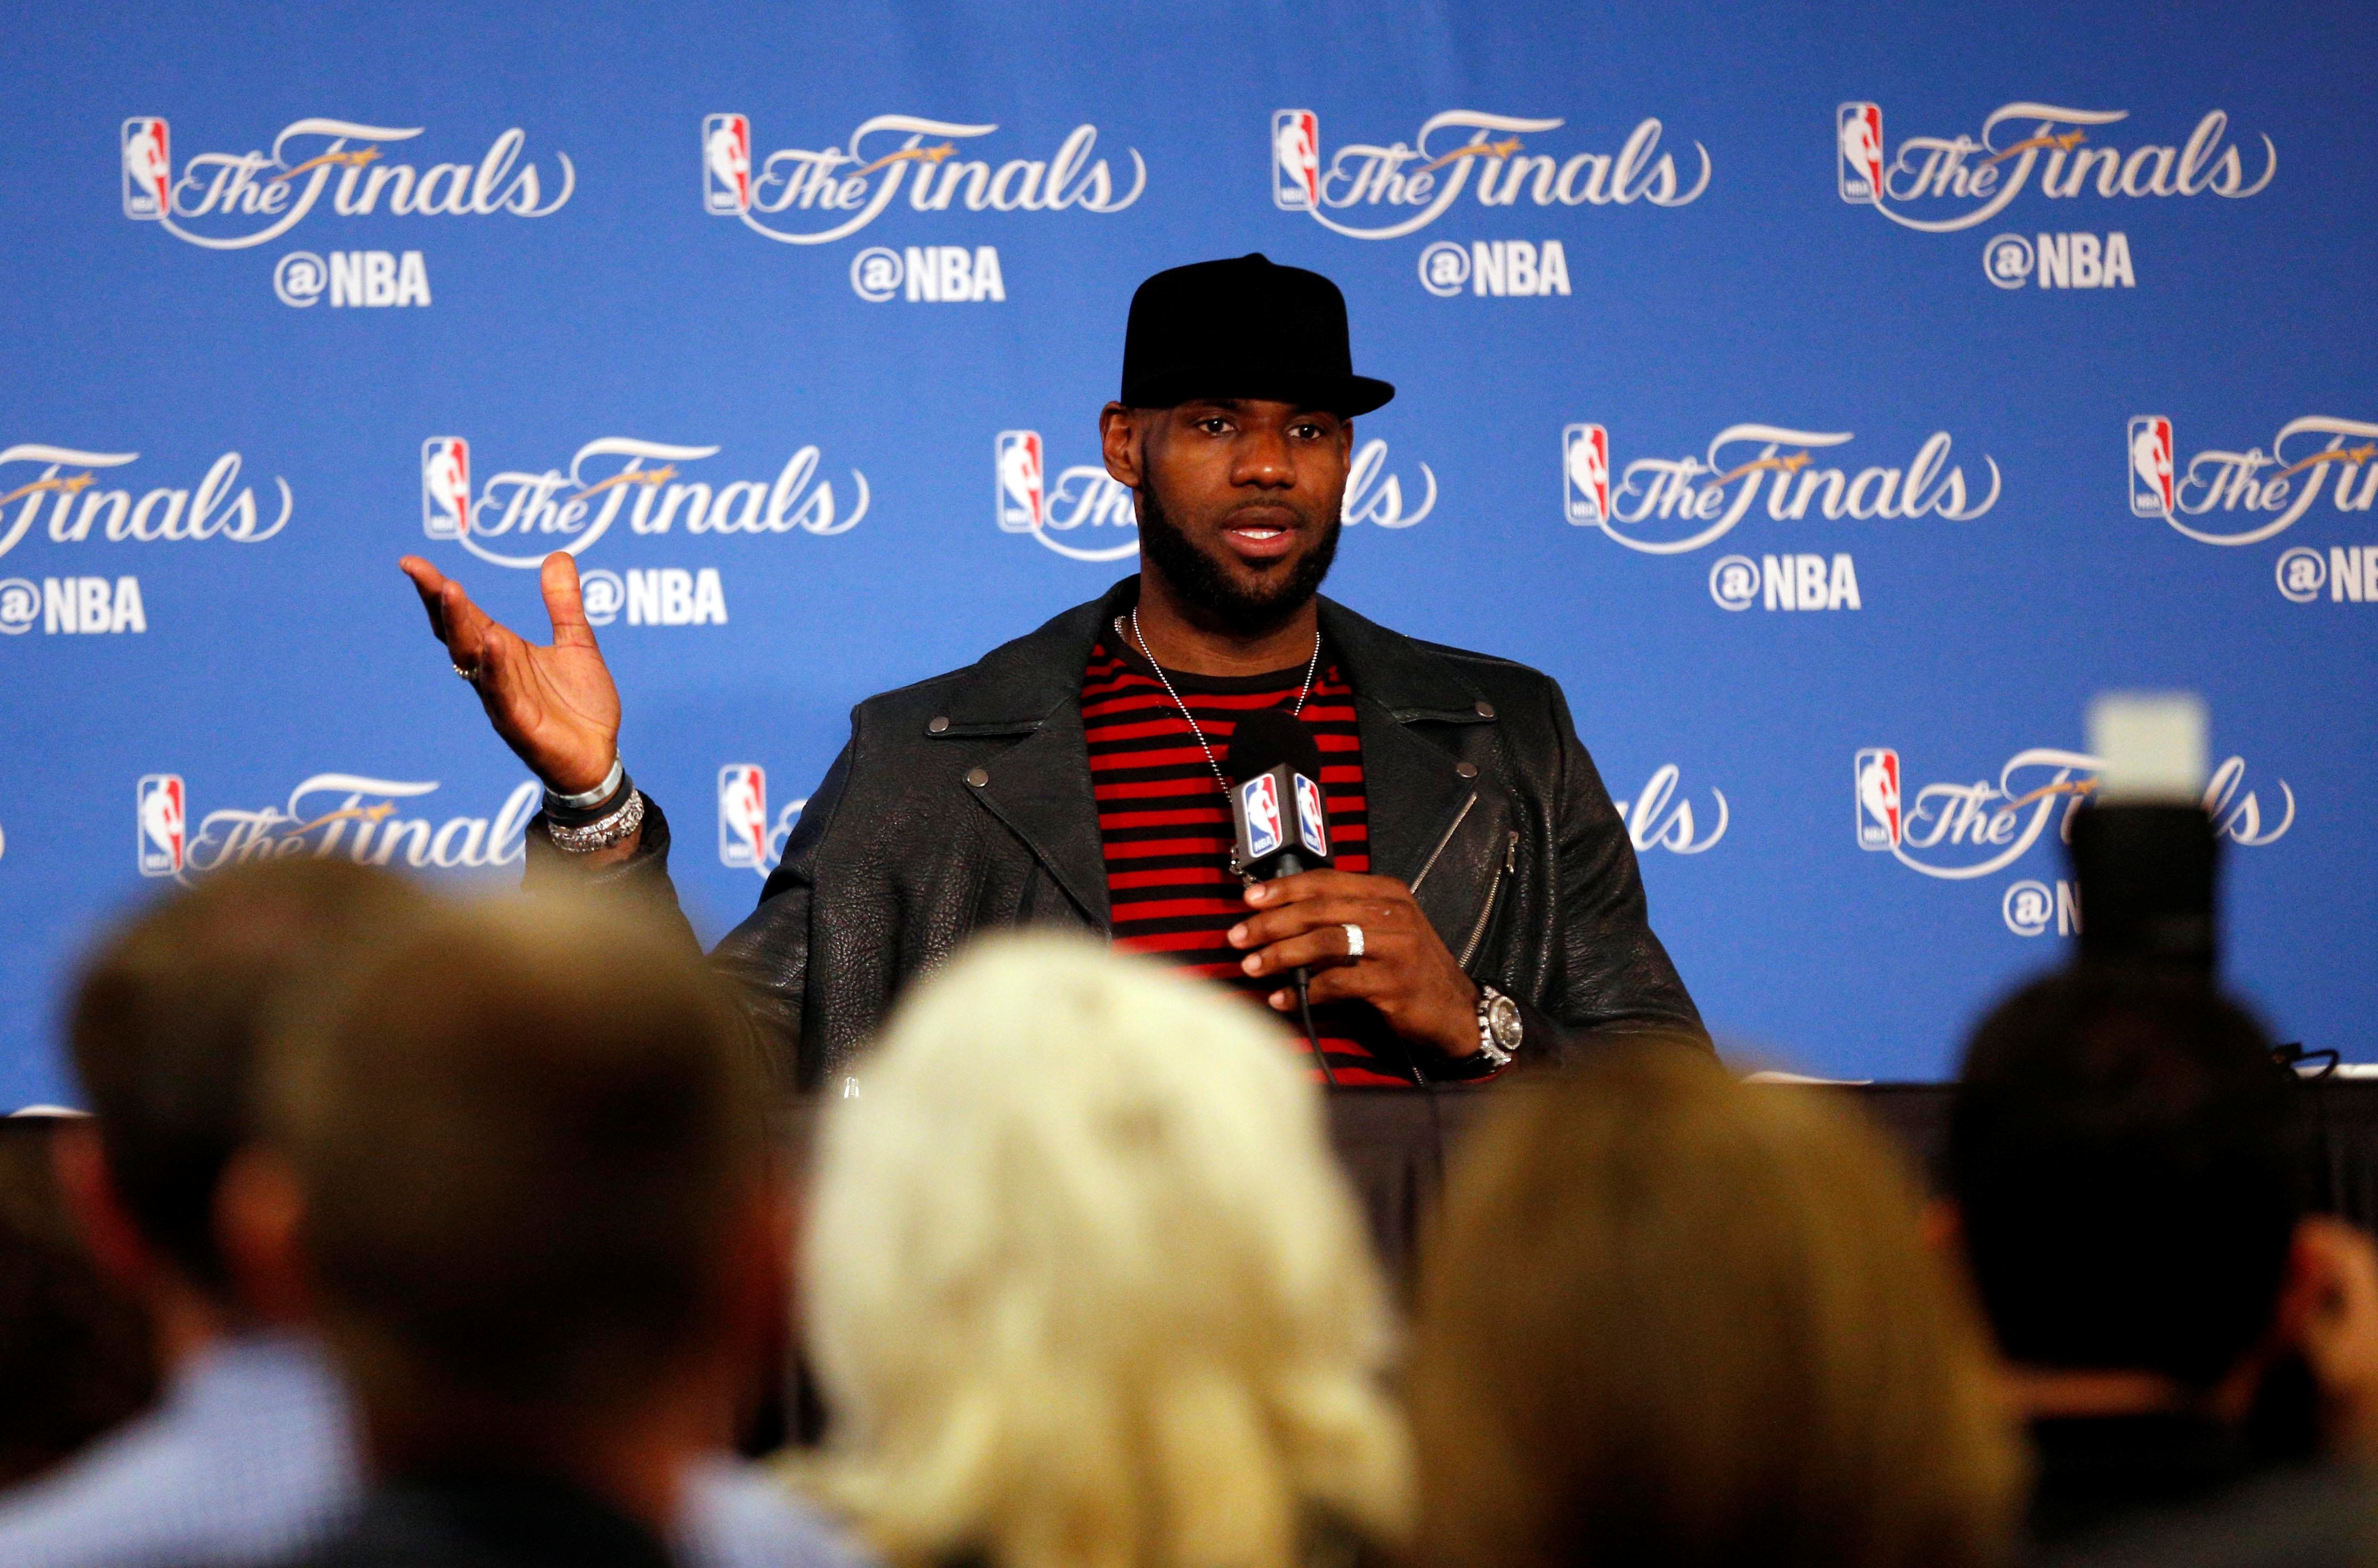 Jun 12, 2017; Oakland, CA, USA; Cleveland Cavaliers forward LeBron James at a press conference after game five of the 2017 NBA Finals against the Golden State Warriors at Oracle Arena. Mandatory Credit: Cary Edmondson-USA TODAY Sports     TPX IMAGES OF THE DAY